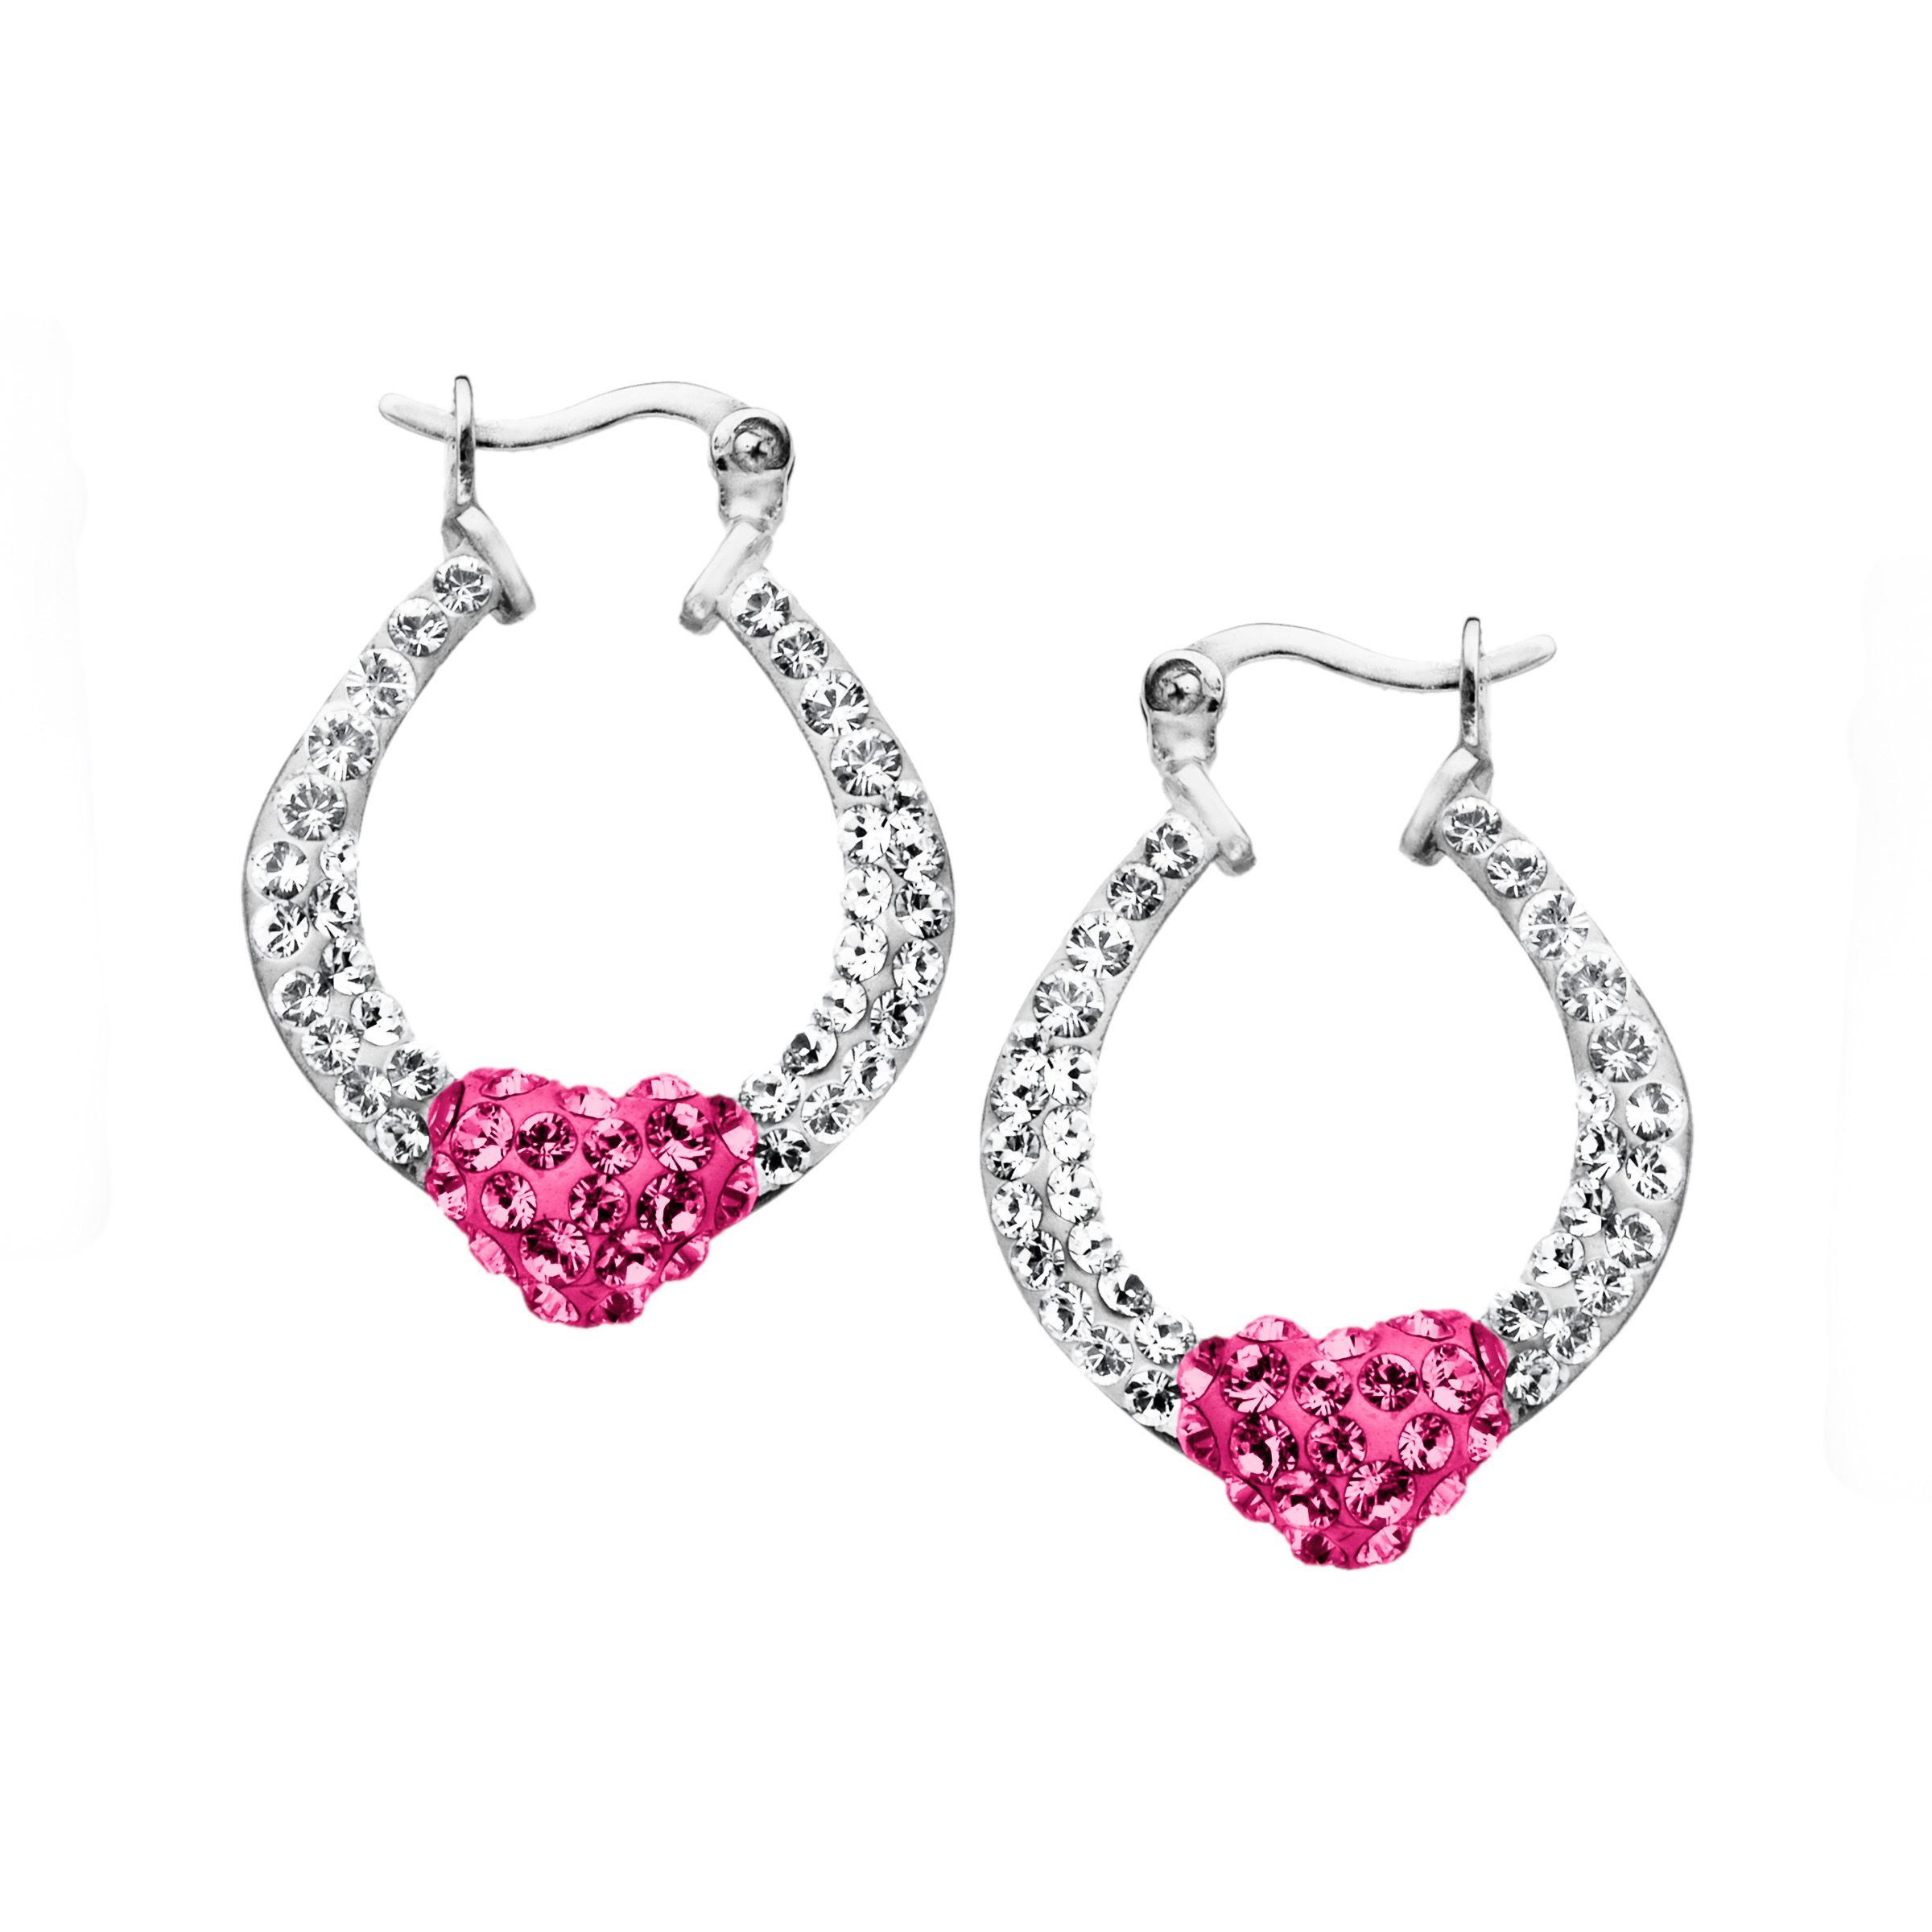 58dab6ffb2c6b9 Details about Heart Hoop Earrings with Rose & White Swarovski Crystal in  Sterling Silver